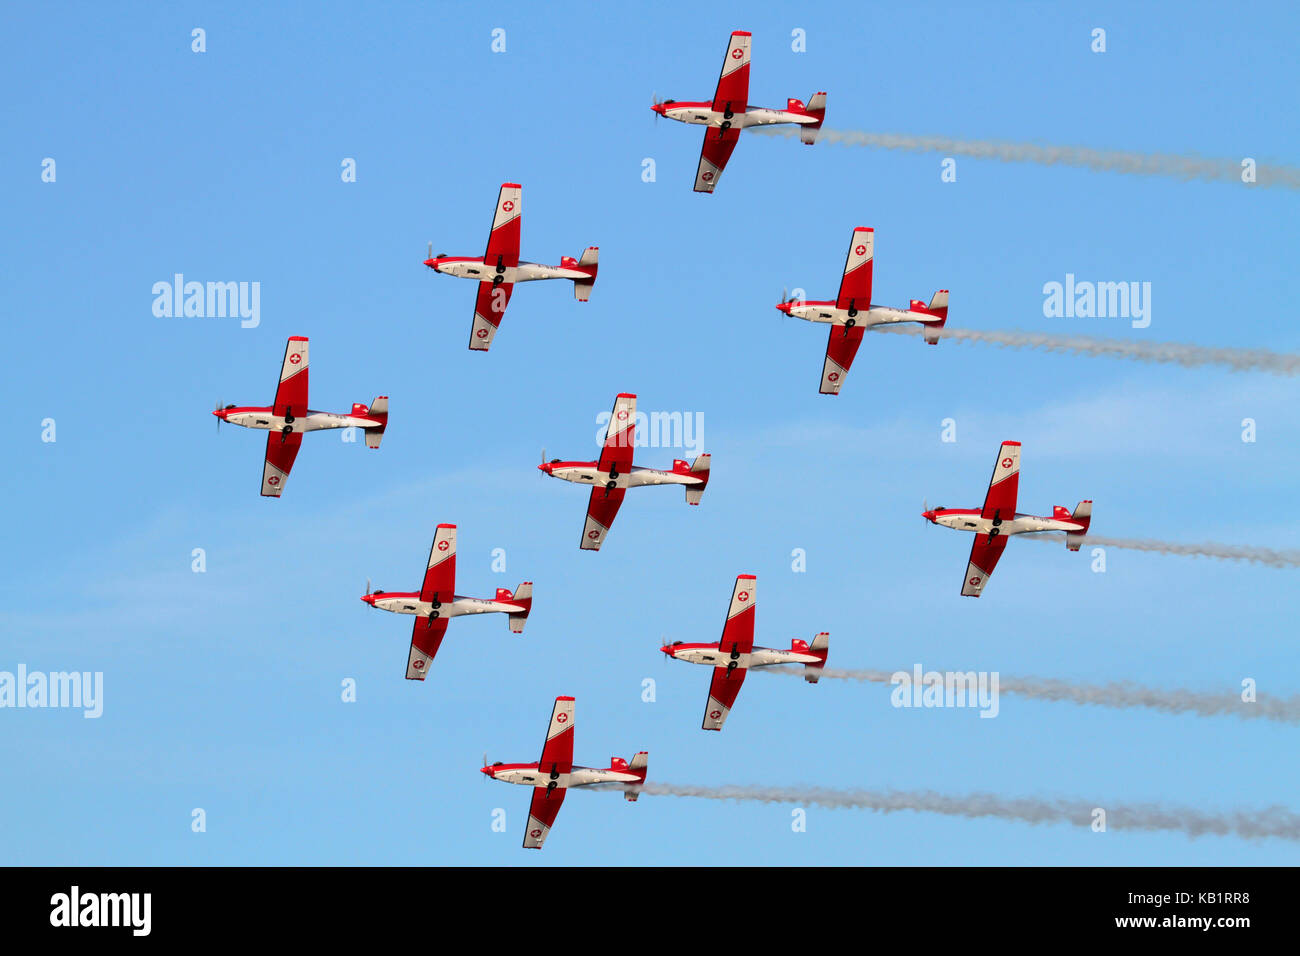 The Swiss Air Force PC-7 aerobatic display team flying in diamond formation during an airshow performance - Stock Image